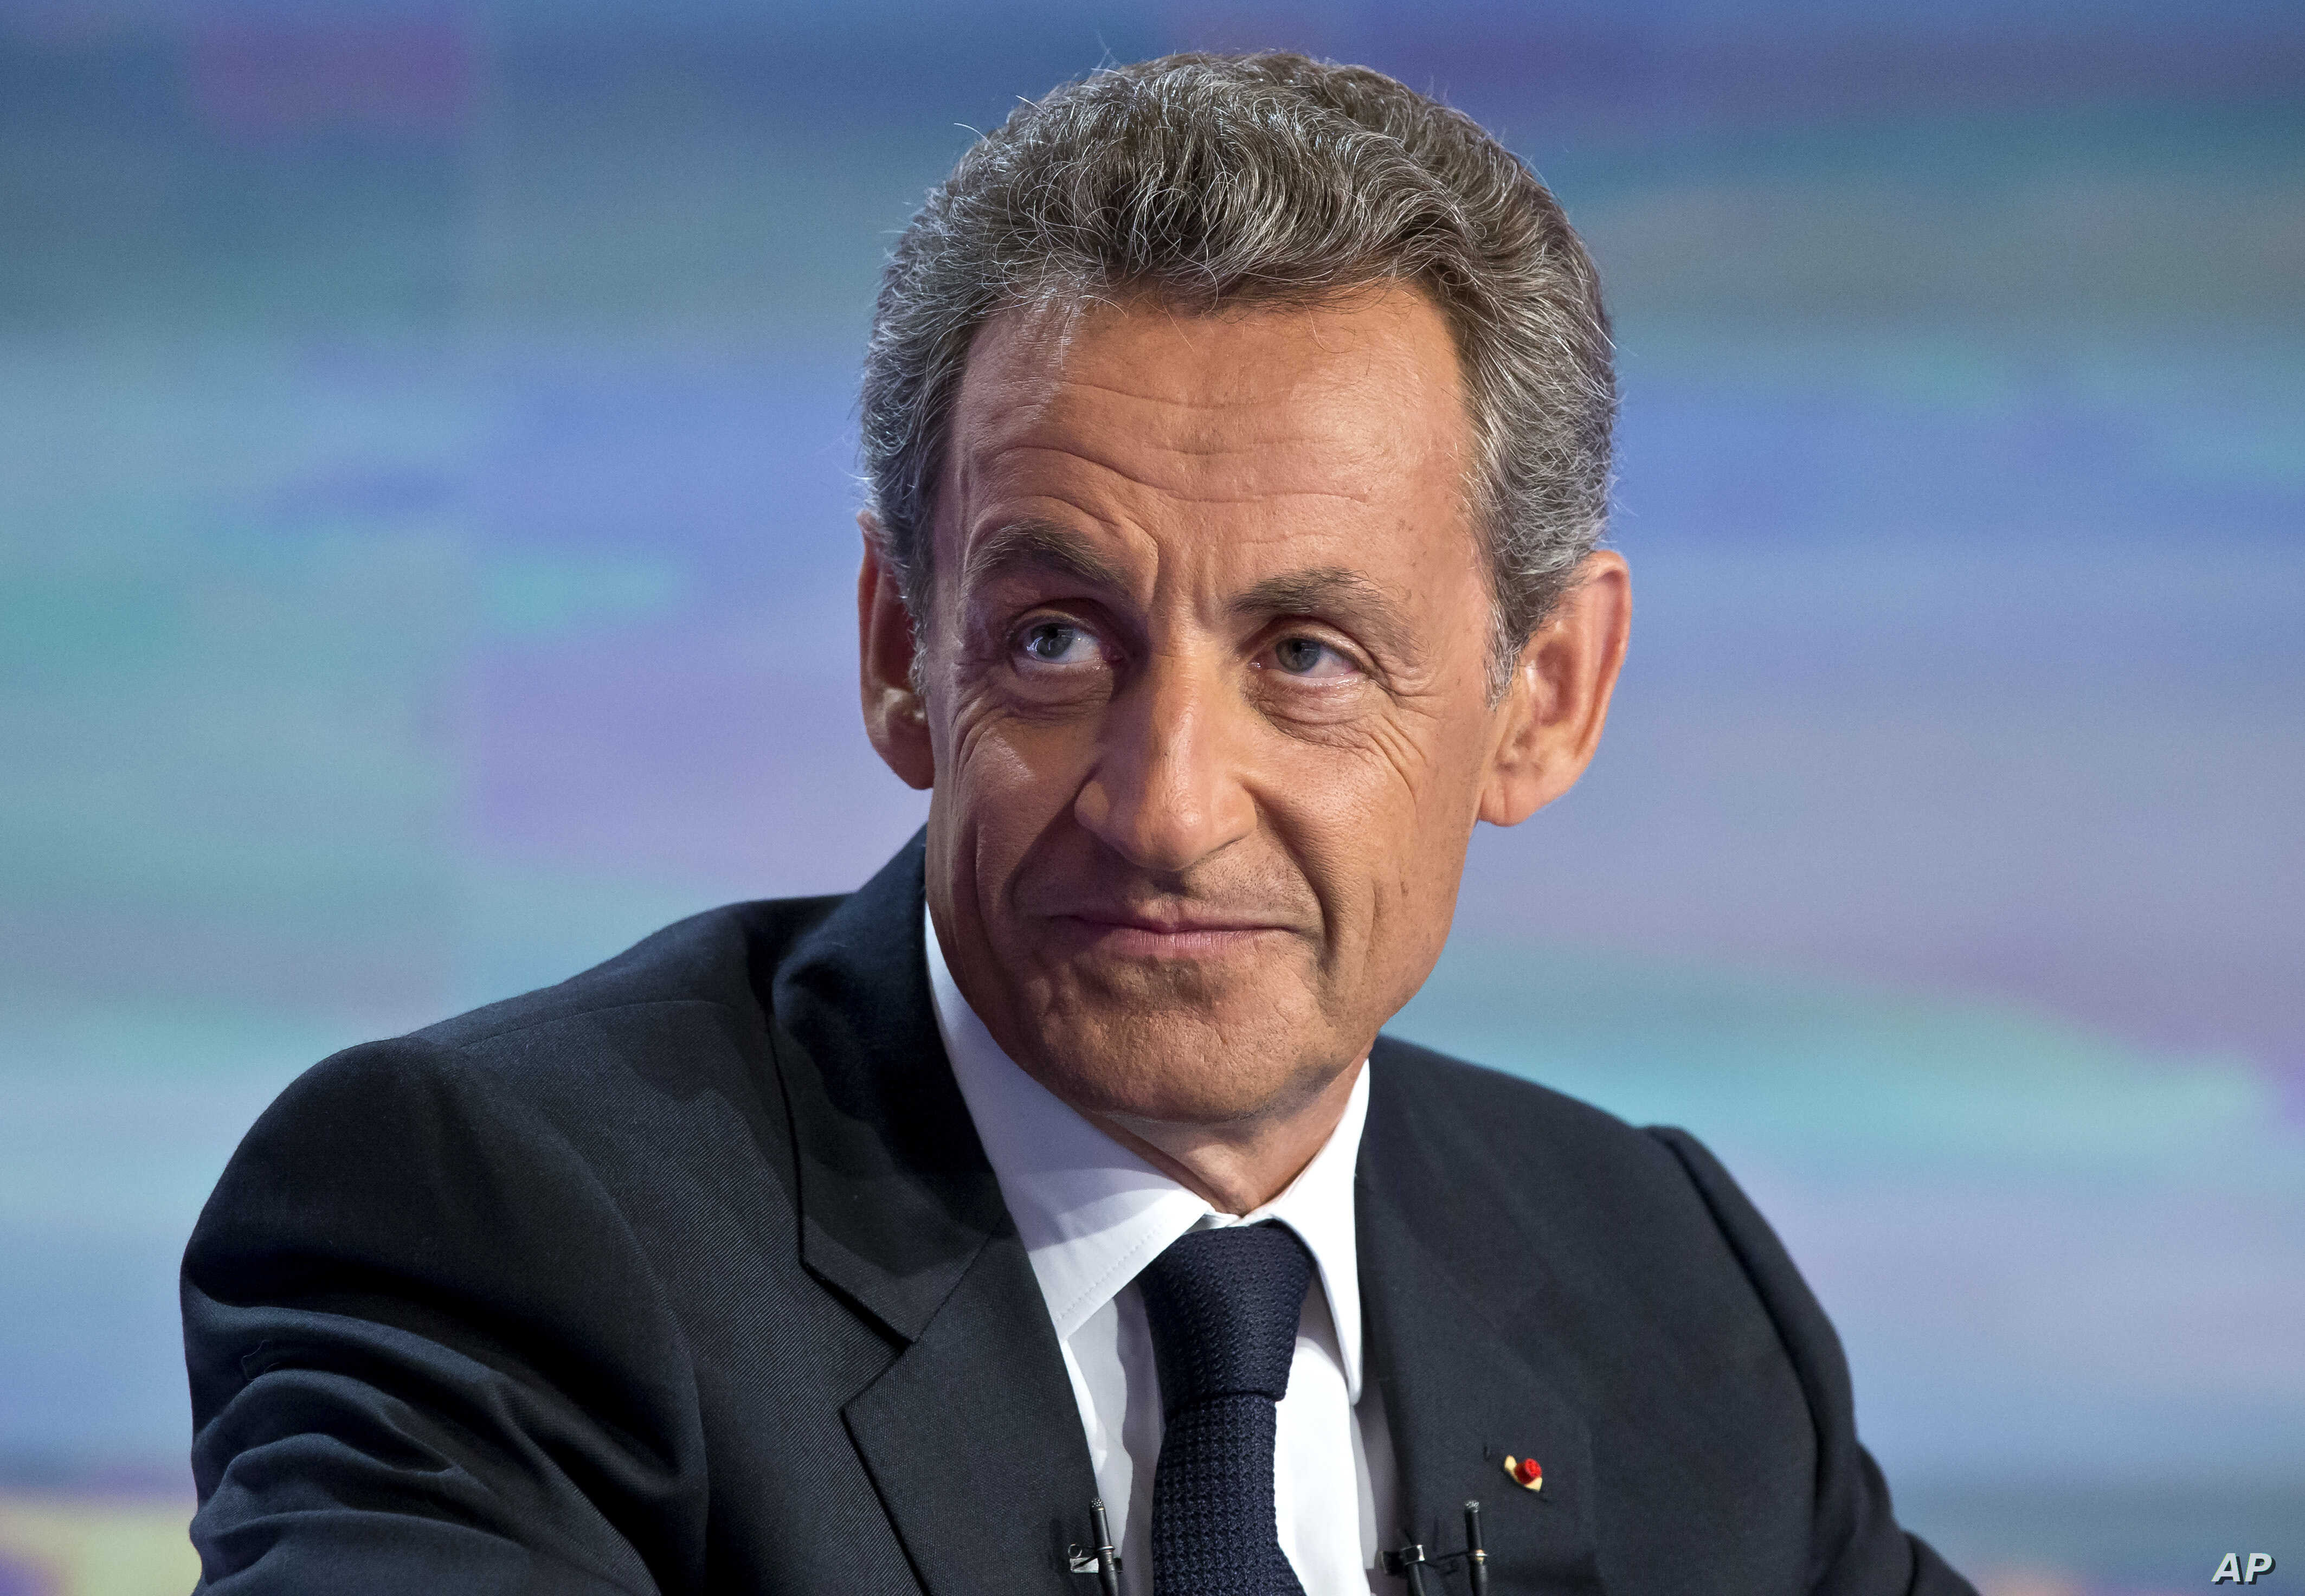 Former French President Sarkozy To Face Trial For Fraud Voice Of America English